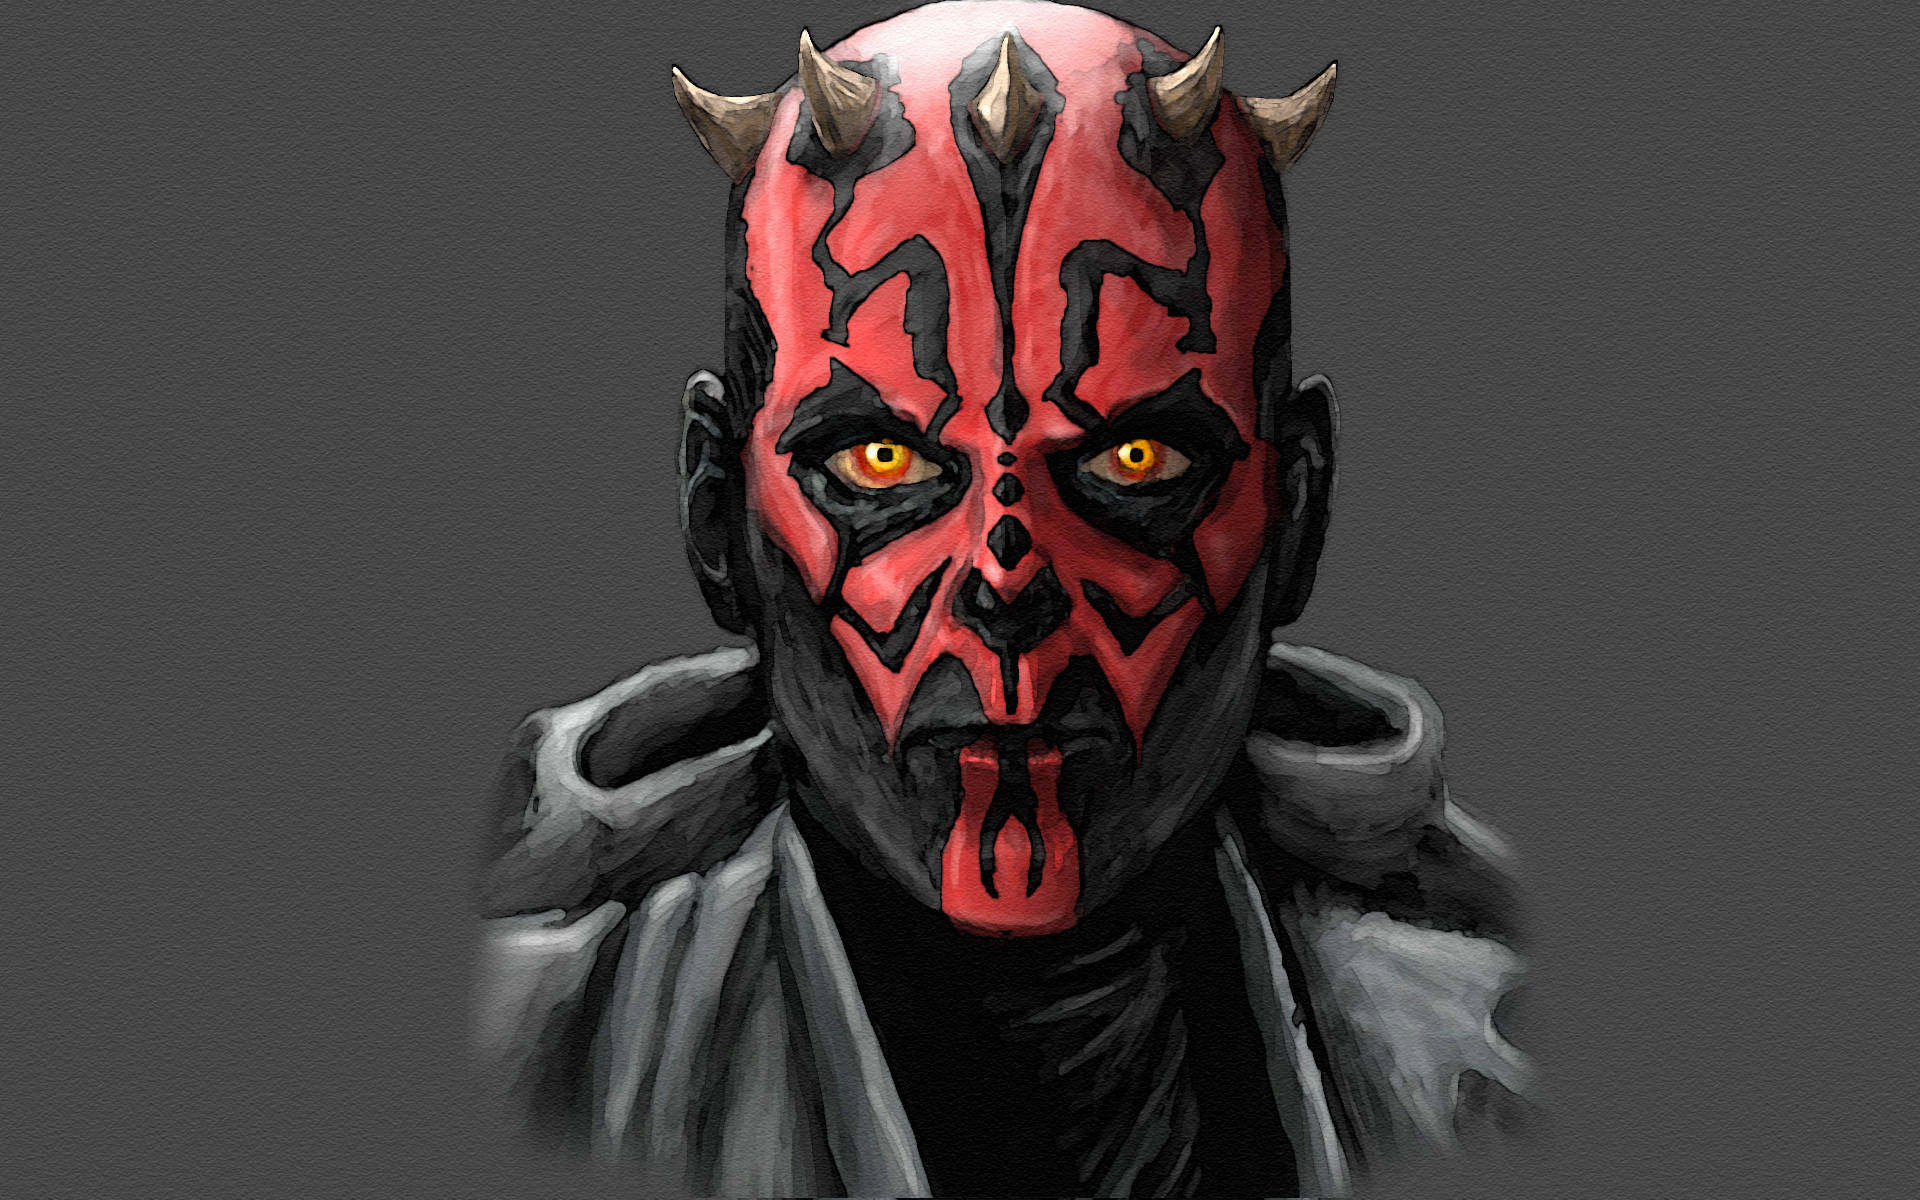 star wars Sith Darth Maul movies wallpaper background